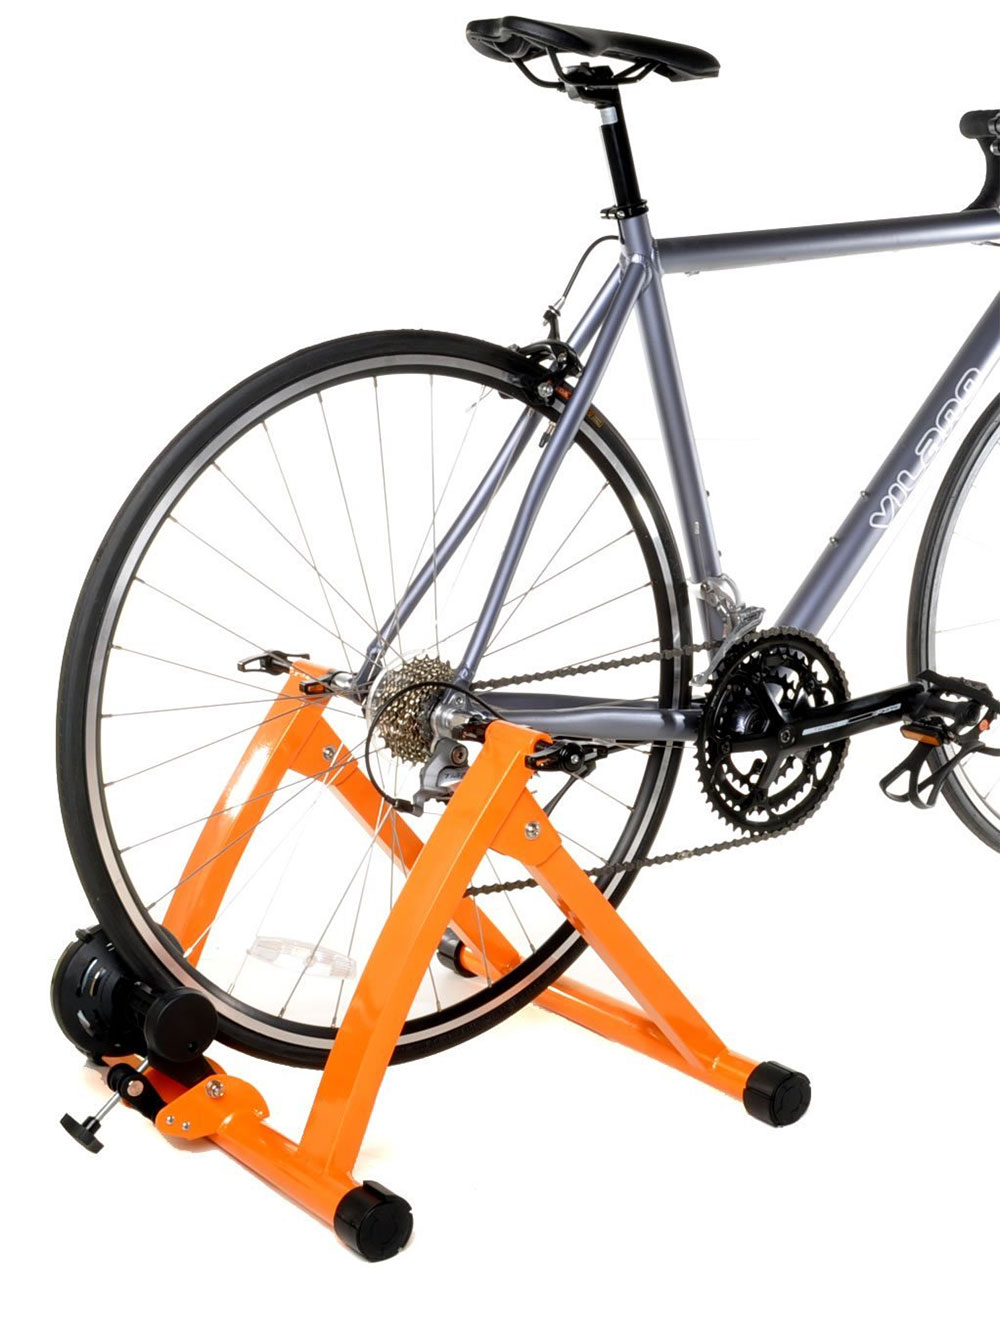 Conquer Indoor Bike Trainer Review The Best Value Bicycle